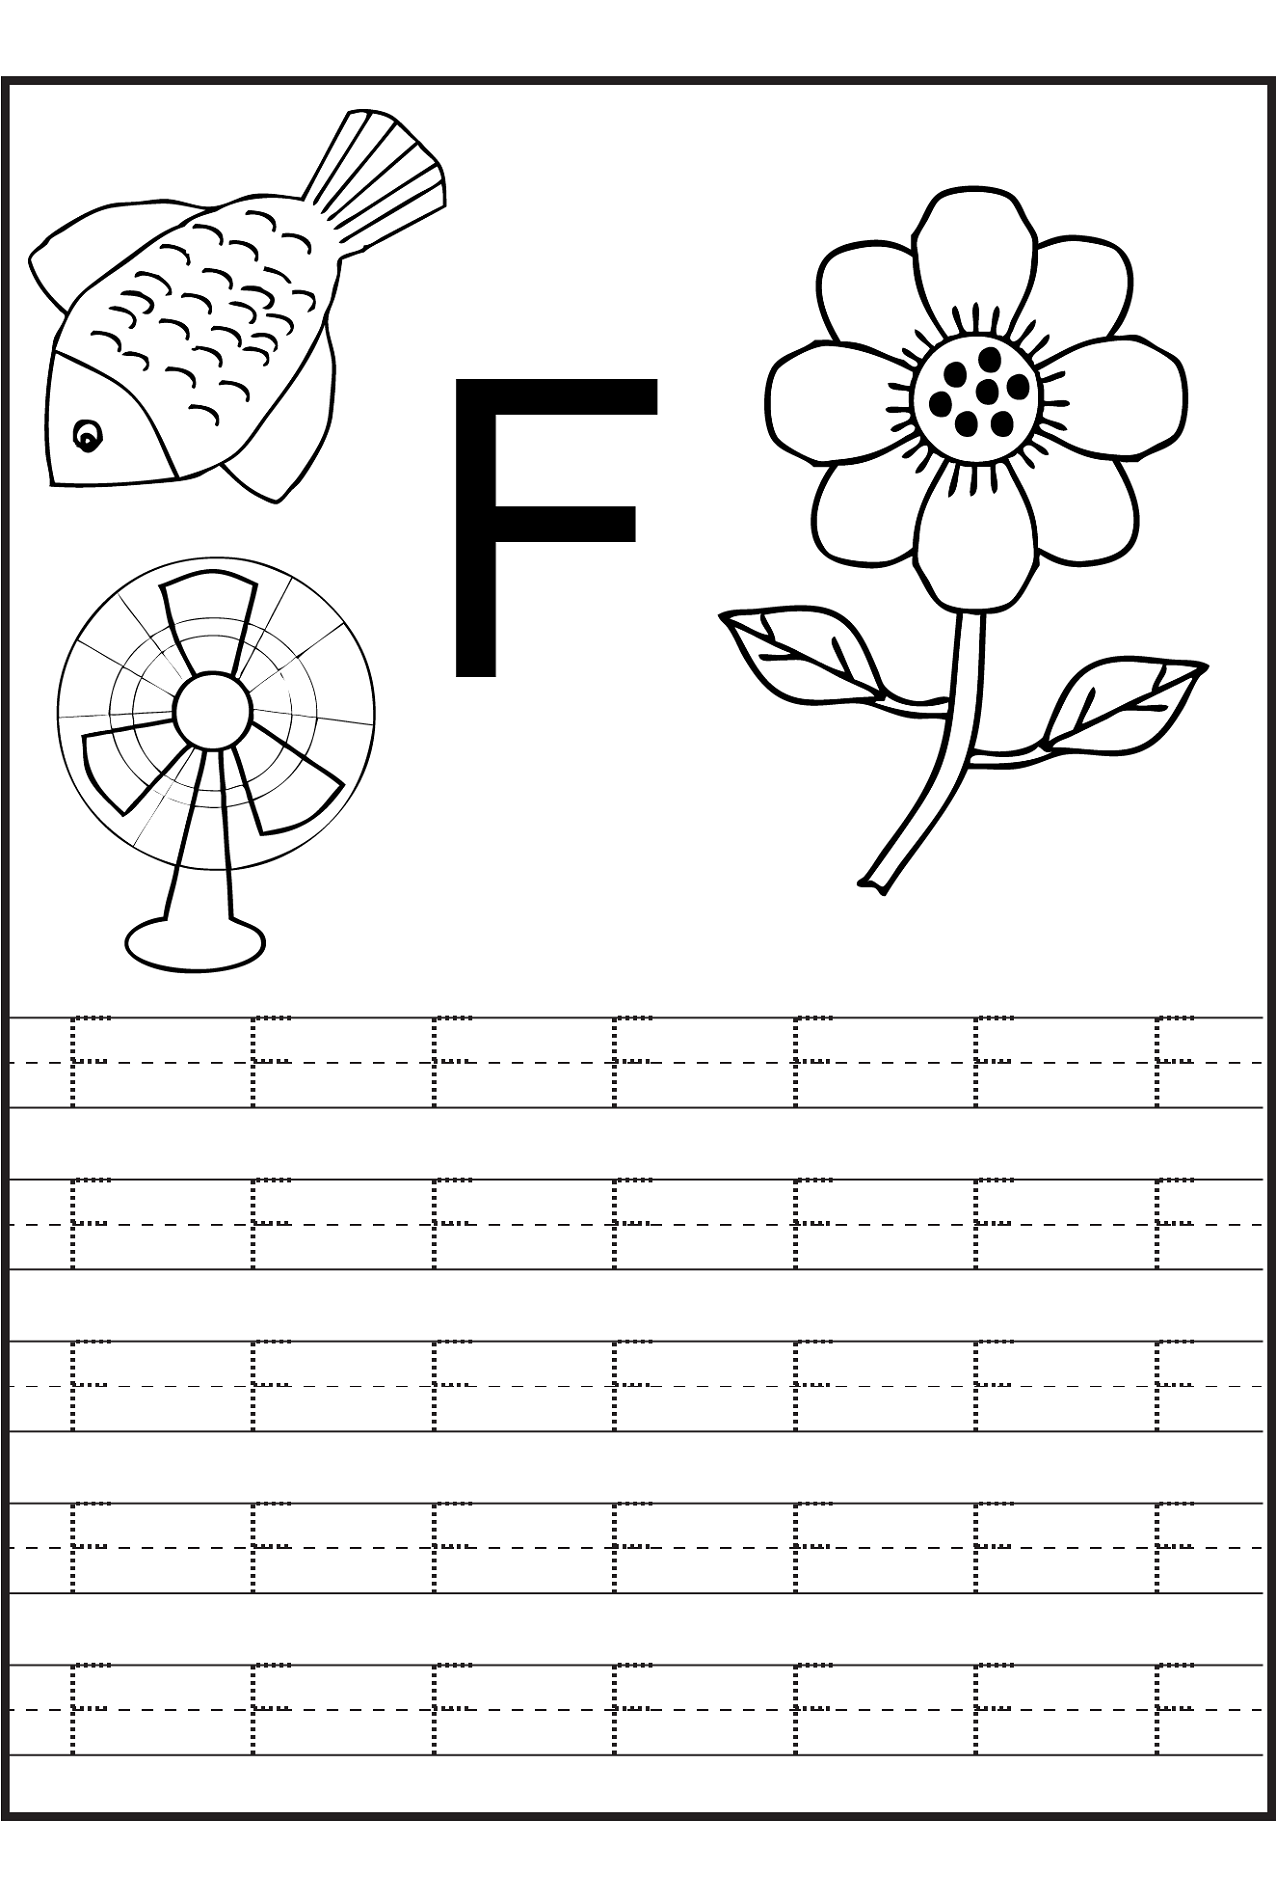 Worksheets Free Printable Letter Tracing Worksheets trace the letters letter f learning to write pinterest f